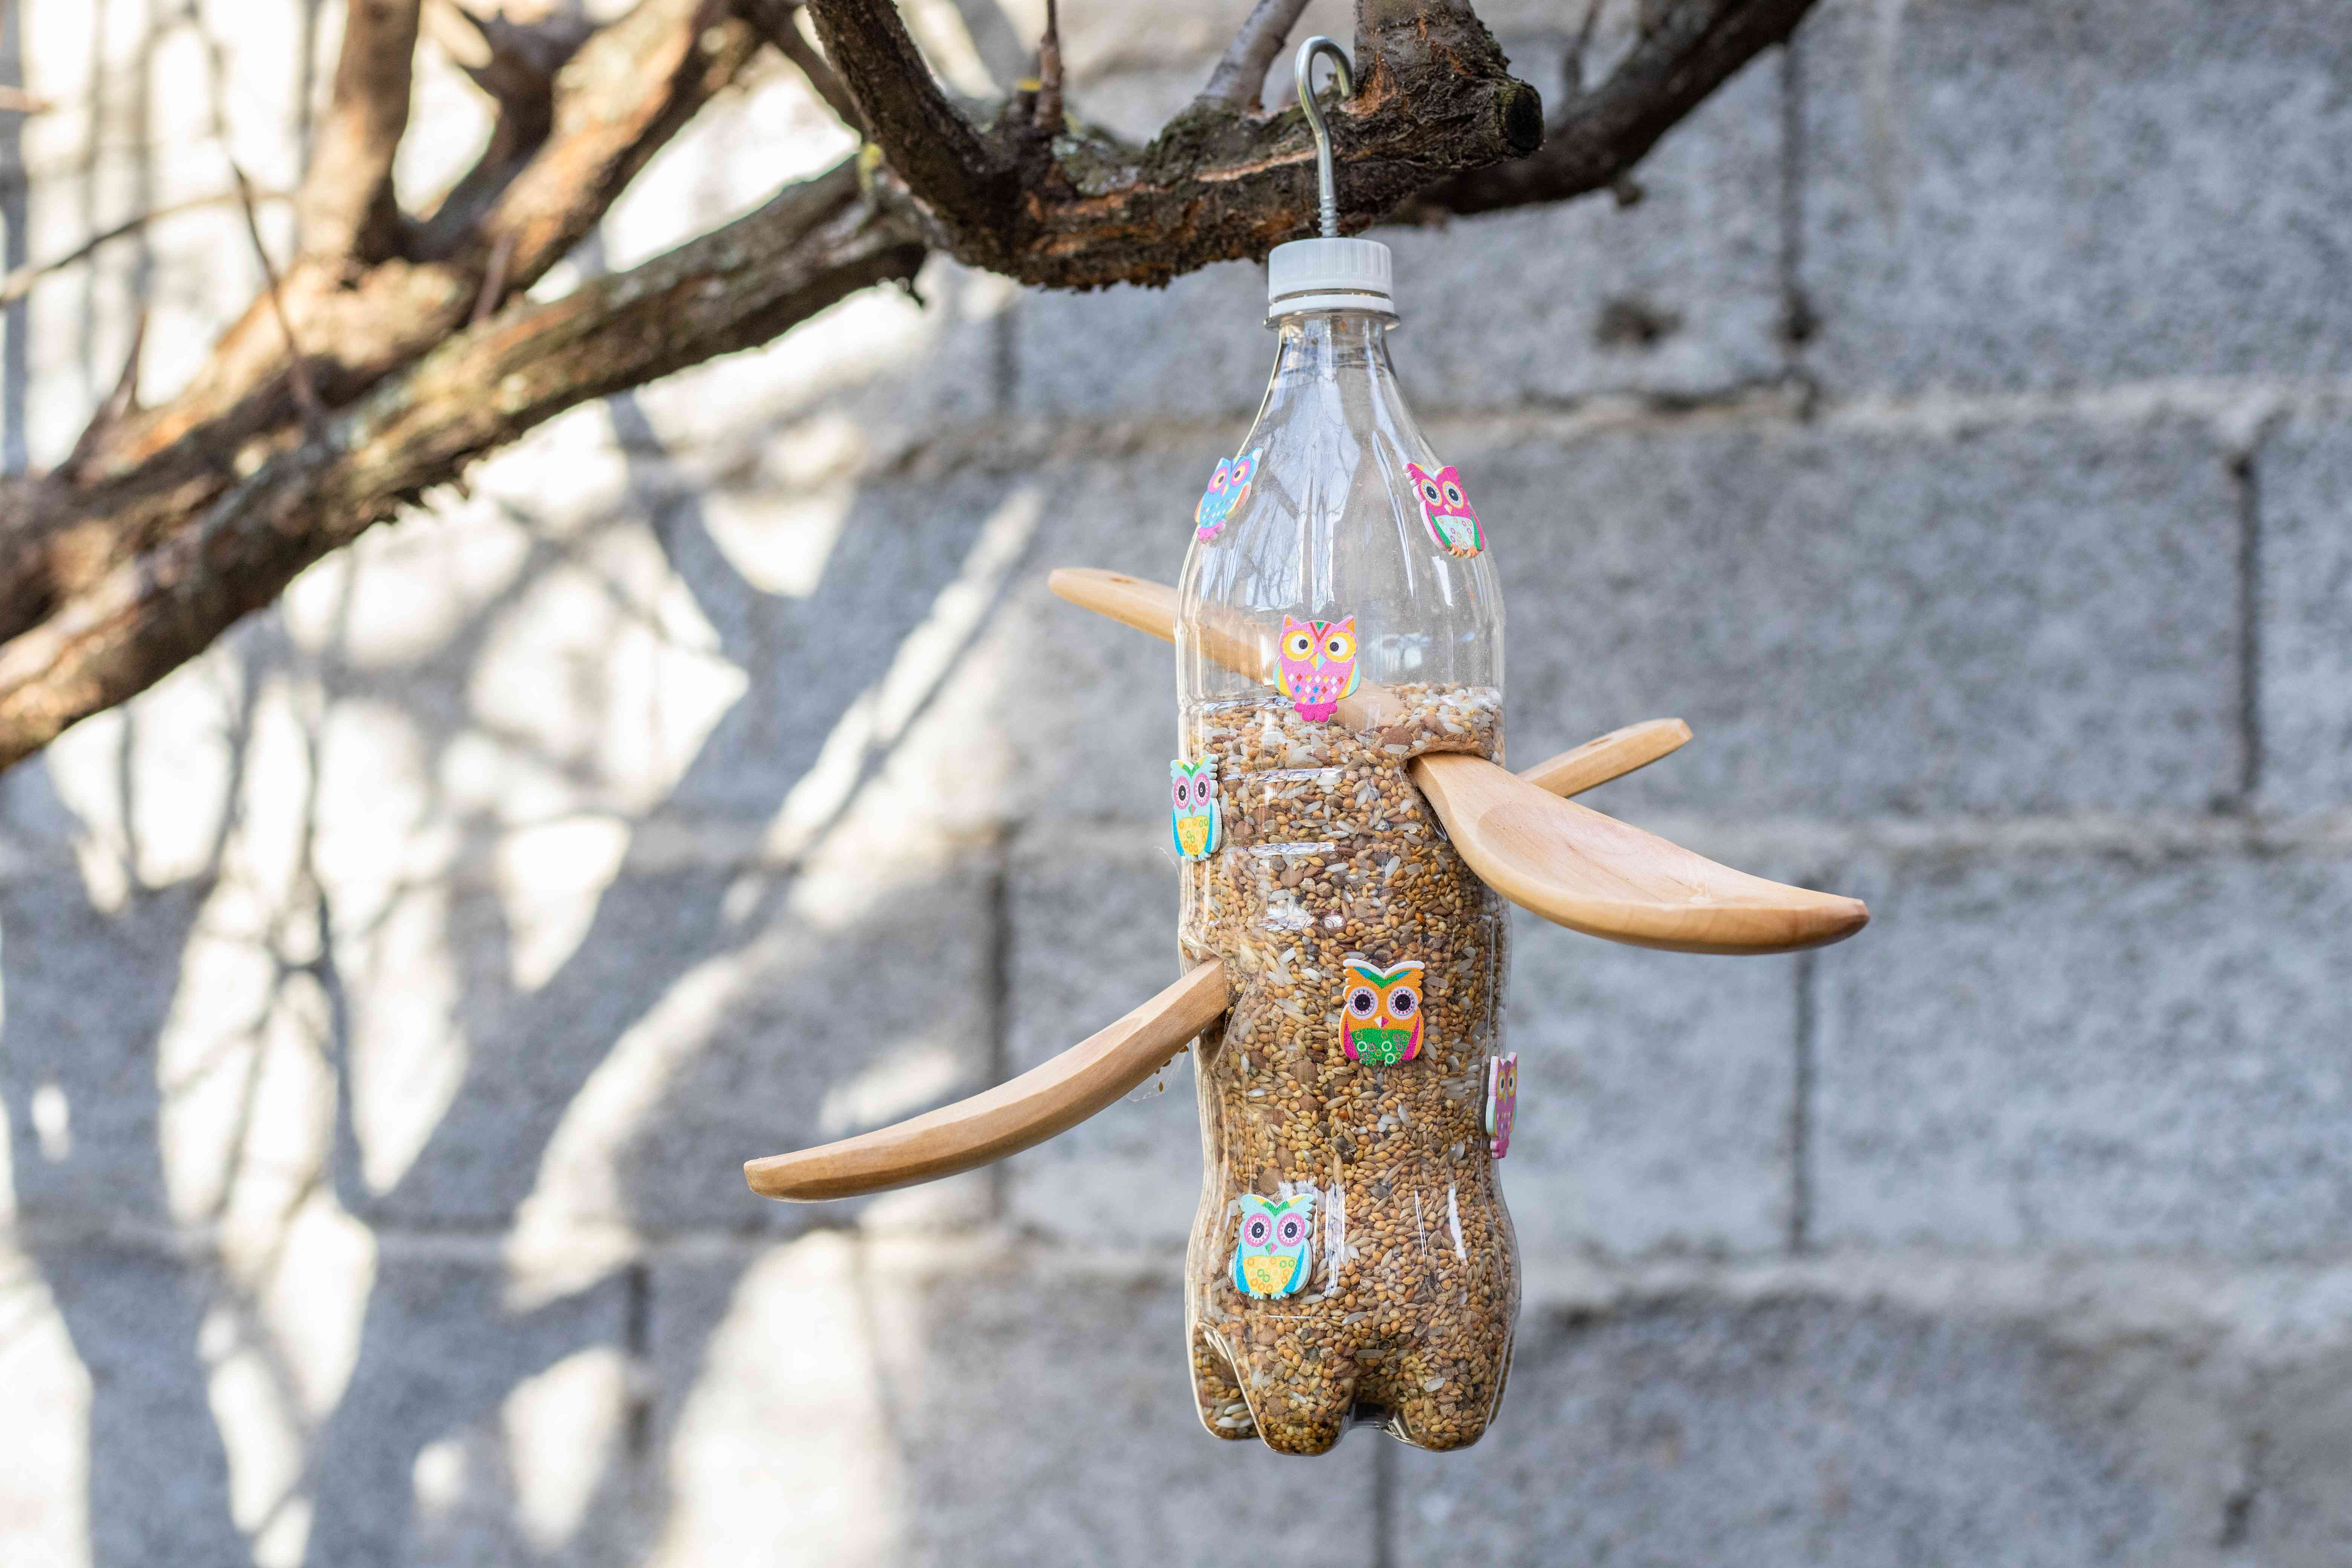 recycled plastic water bottle as bird feeder with wooden spoons